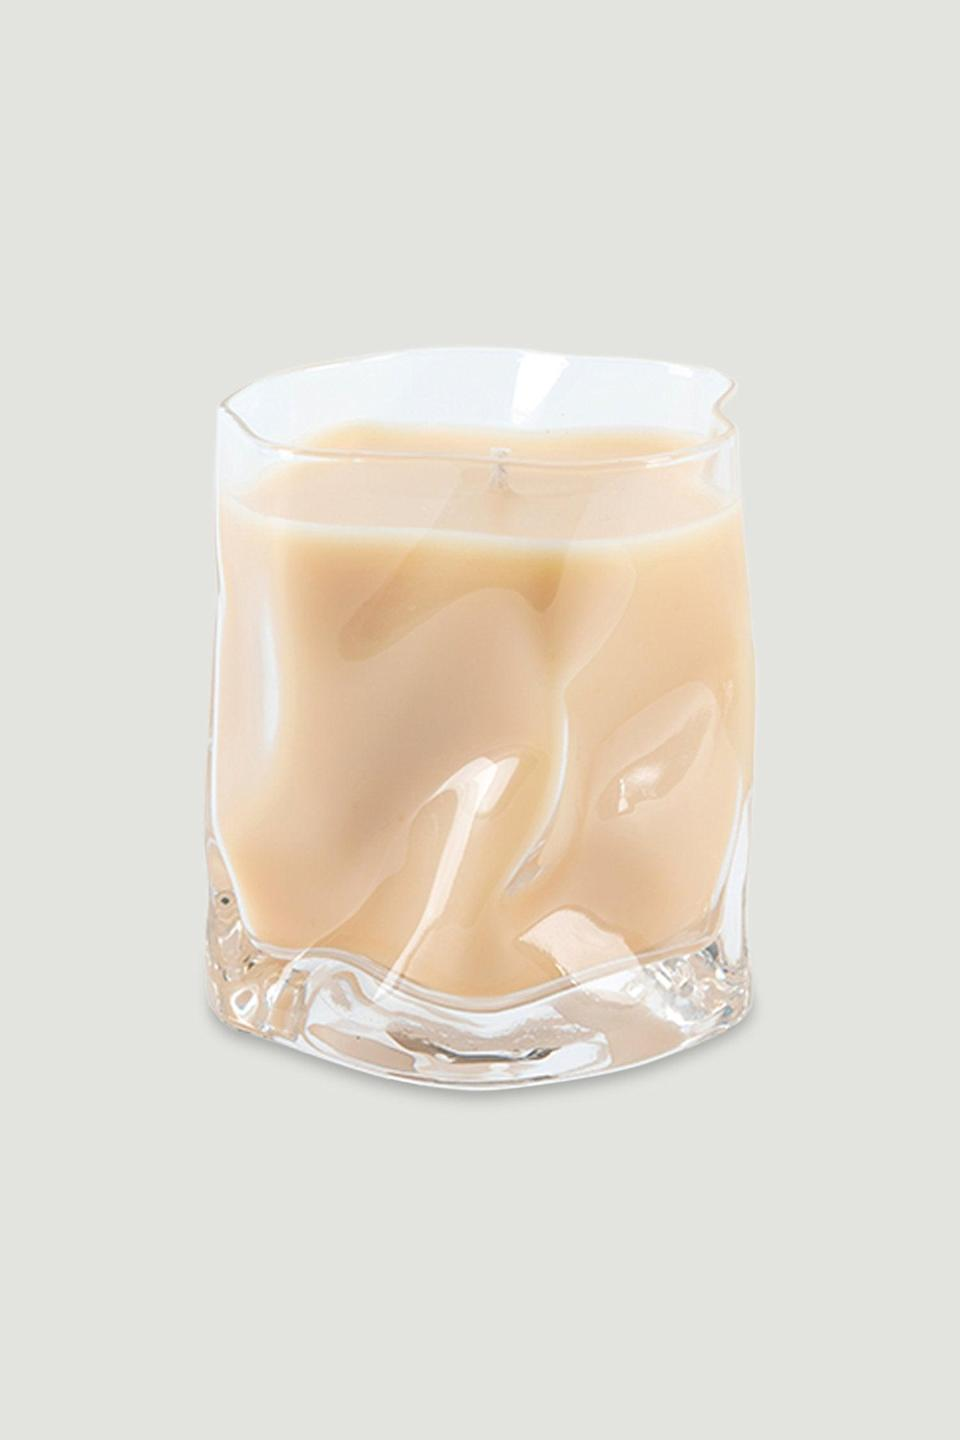 """<strong>Under £150</strong><br><br>I recently read something about toxic candles and started to stress about the contents of my collection. On my subsequent search for natural wax alternatives, I found this candle which not only smells divine but also comes in a lovely, hand-blown glass holder.<br><br><strong>Cyre</strong> EROS Candle, $, available at <a href=""""https://aspect-online.co.uk/products/eros-candle?trail=vendor"""" rel=""""nofollow noopener"""" target=""""_blank"""" data-ylk=""""slk:Aspect Online"""" class=""""link rapid-noclick-resp"""">Aspect Online</a>"""